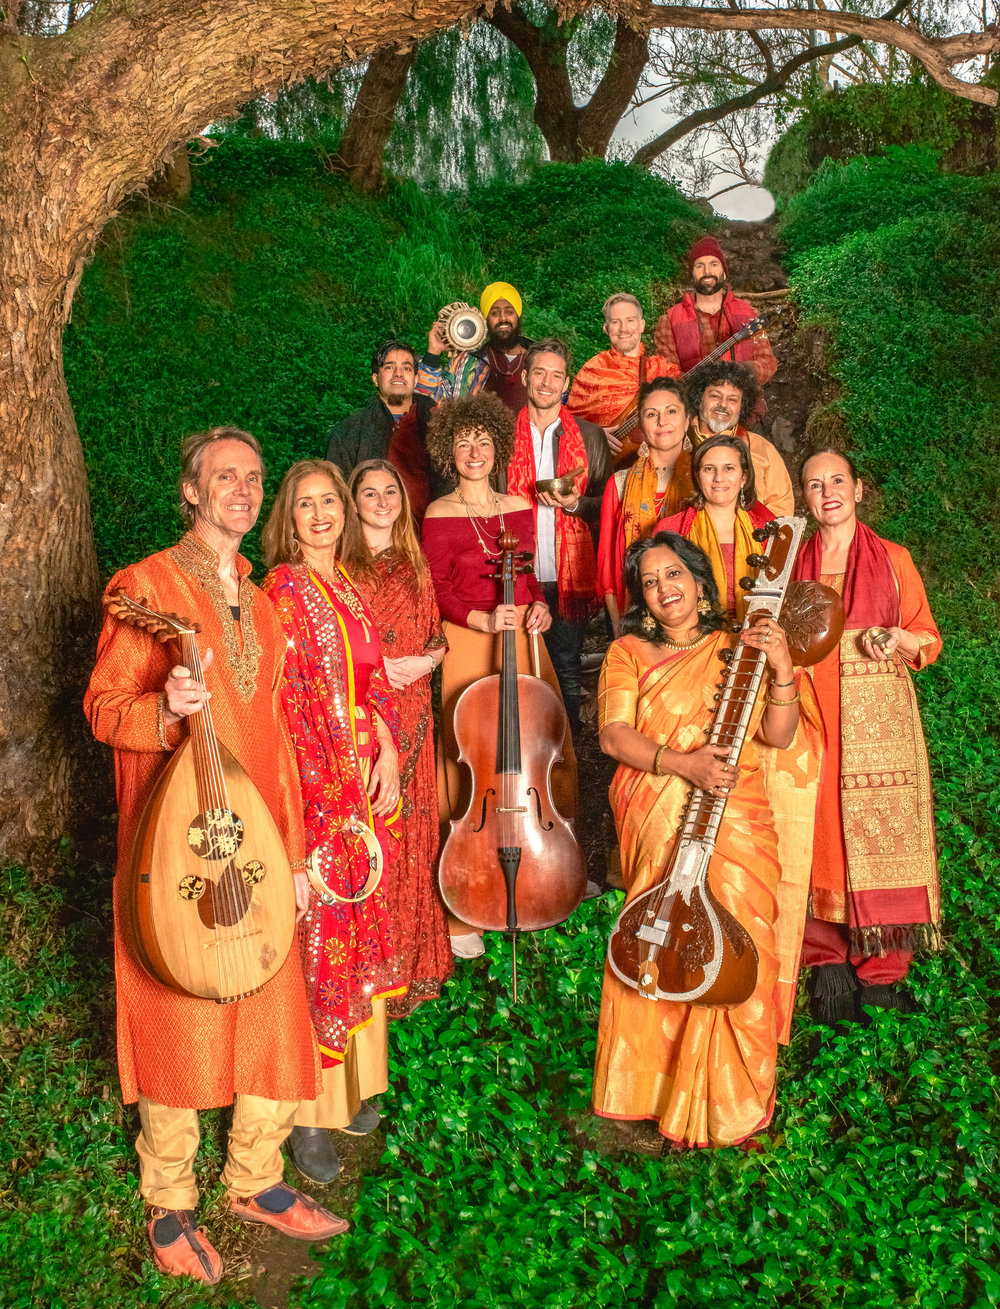 Vedic Vibe ensemble (clockwise from left) Phil Gunter, Harb Gill, Stephanie Jackowski, Deborah Adelin (with cello), Govinda Puri, Richard Chambers (with tibetan bowl), Jagdeep Shergill (with tabla on shoulder), Dhanesh Trimmer, Scott Fraser (red hat), Boaz Modman (curly black hair), Carlie Mills, Dianna Tarr, Sam Cox and Sarita McHarg (with sitar). Picture: Martin Reddy